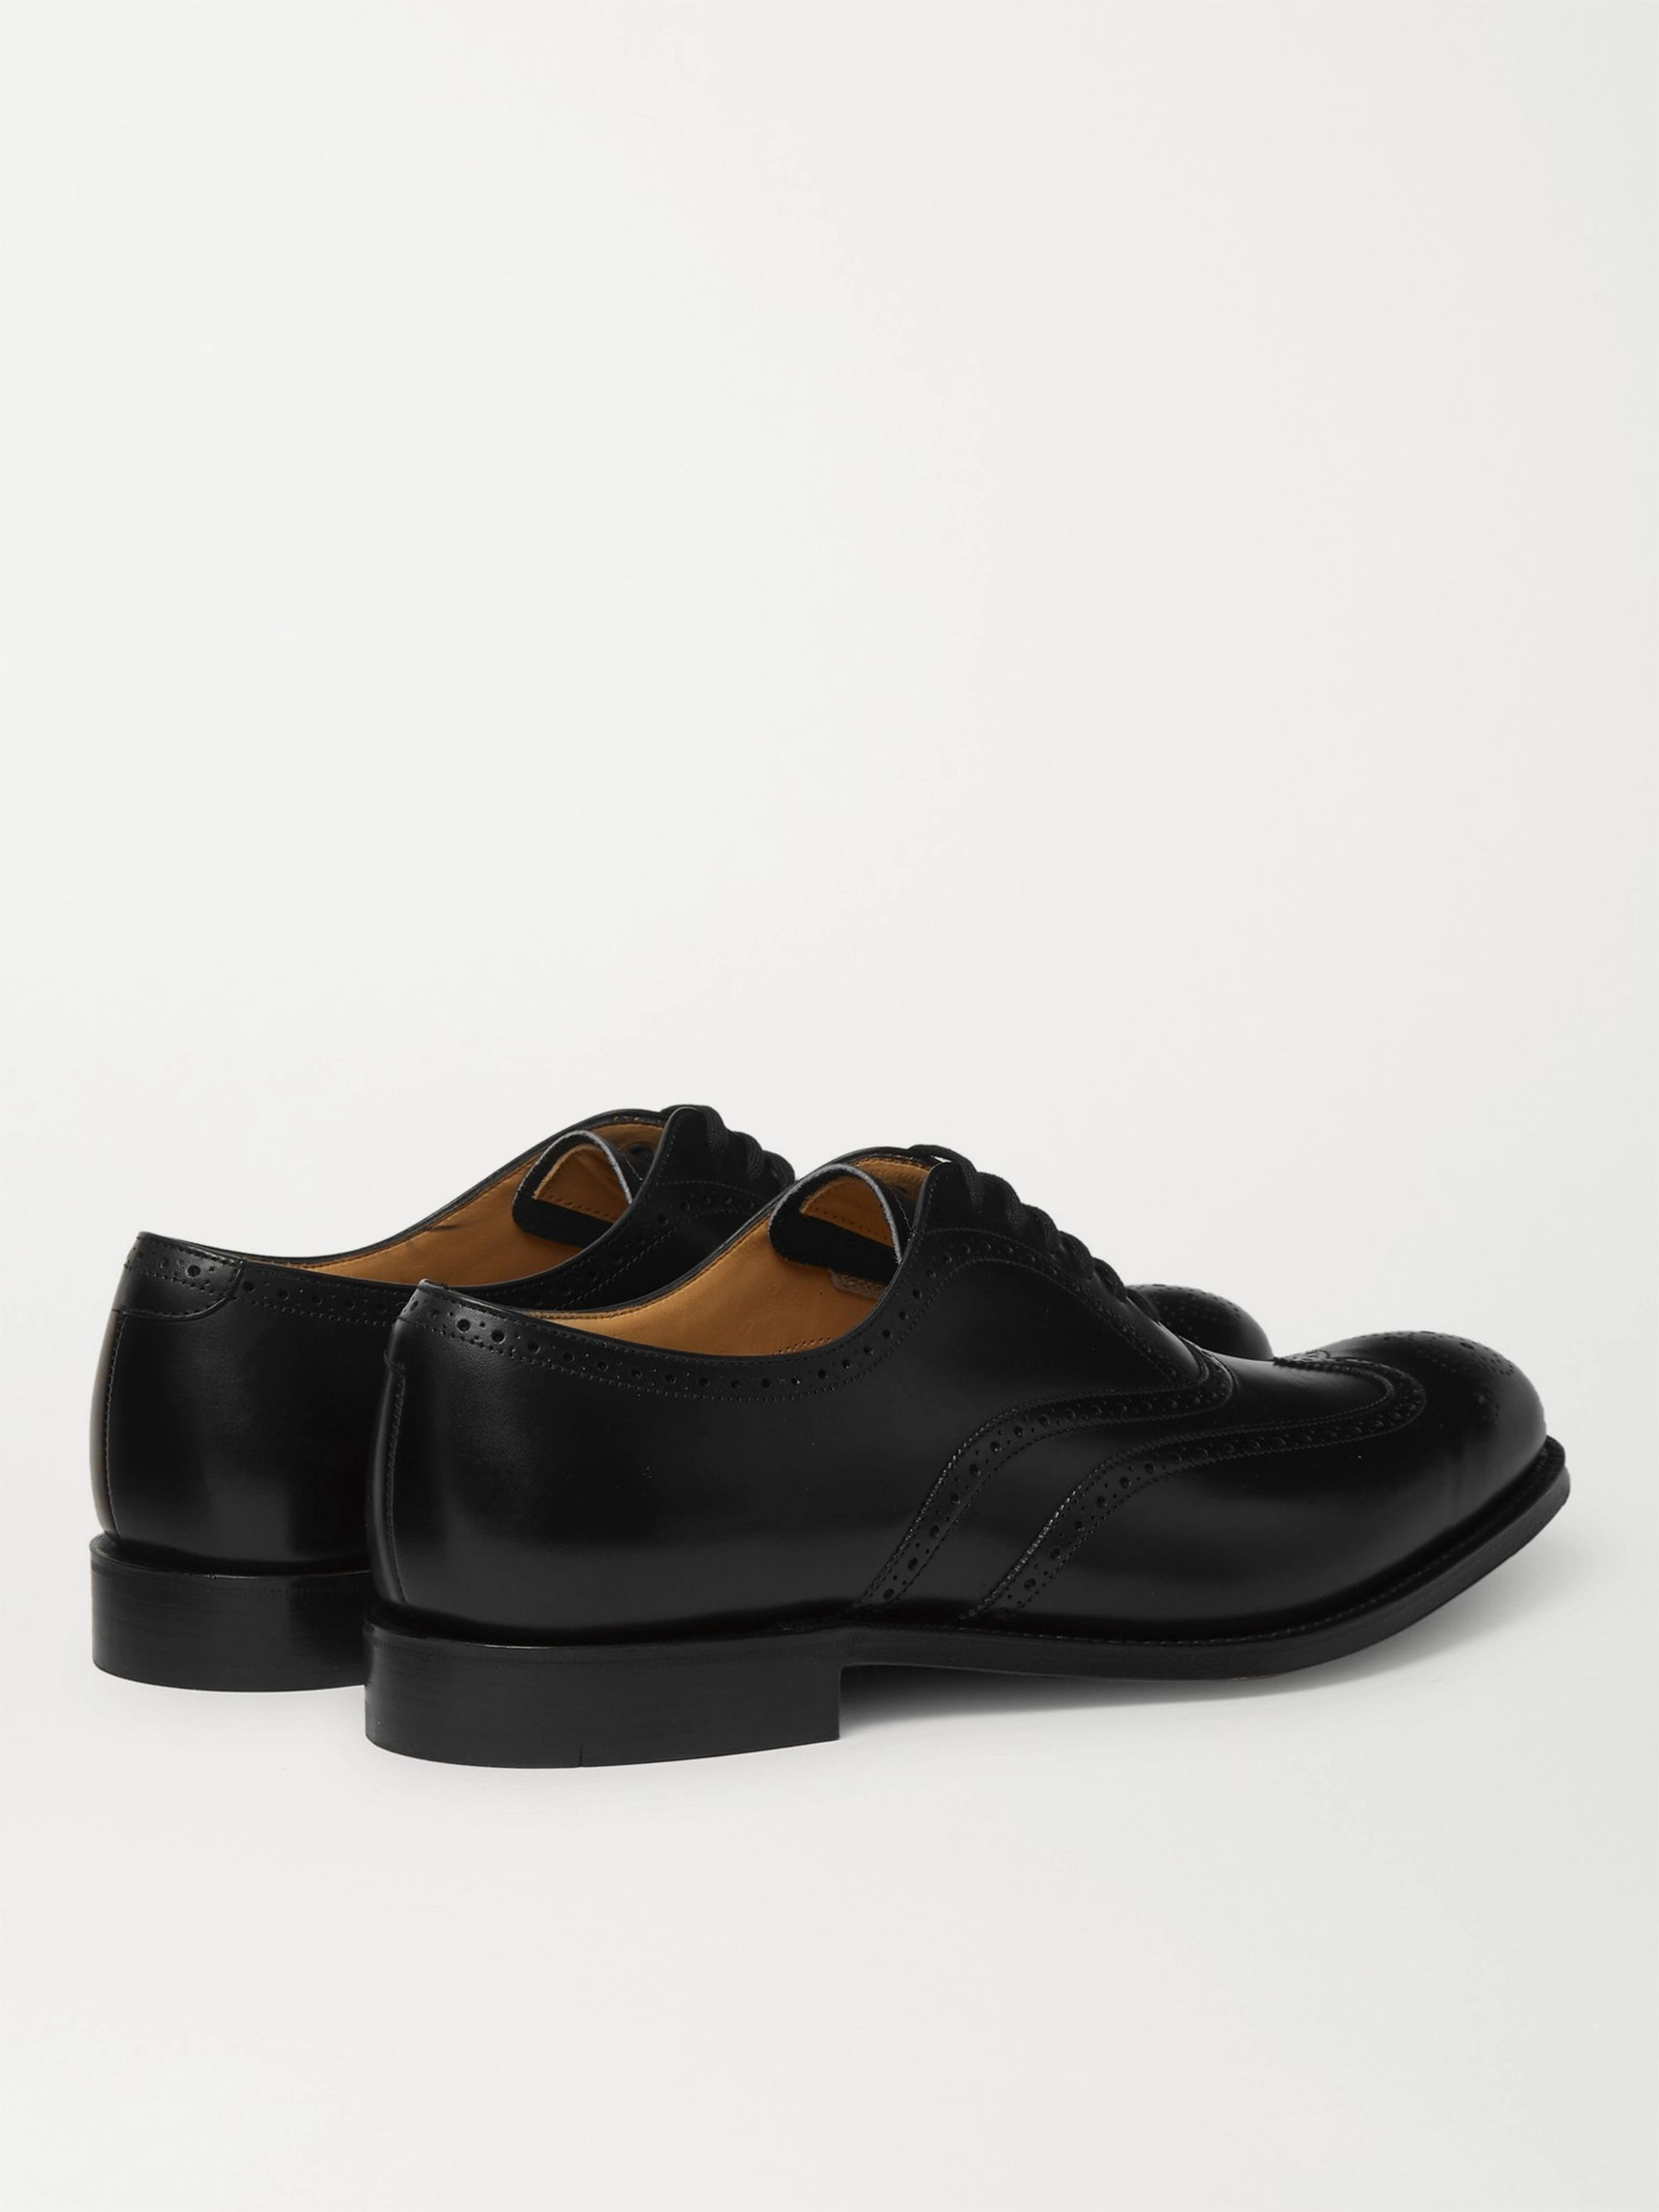 CHURCH'S Berlin Leather Wingtip Brogues